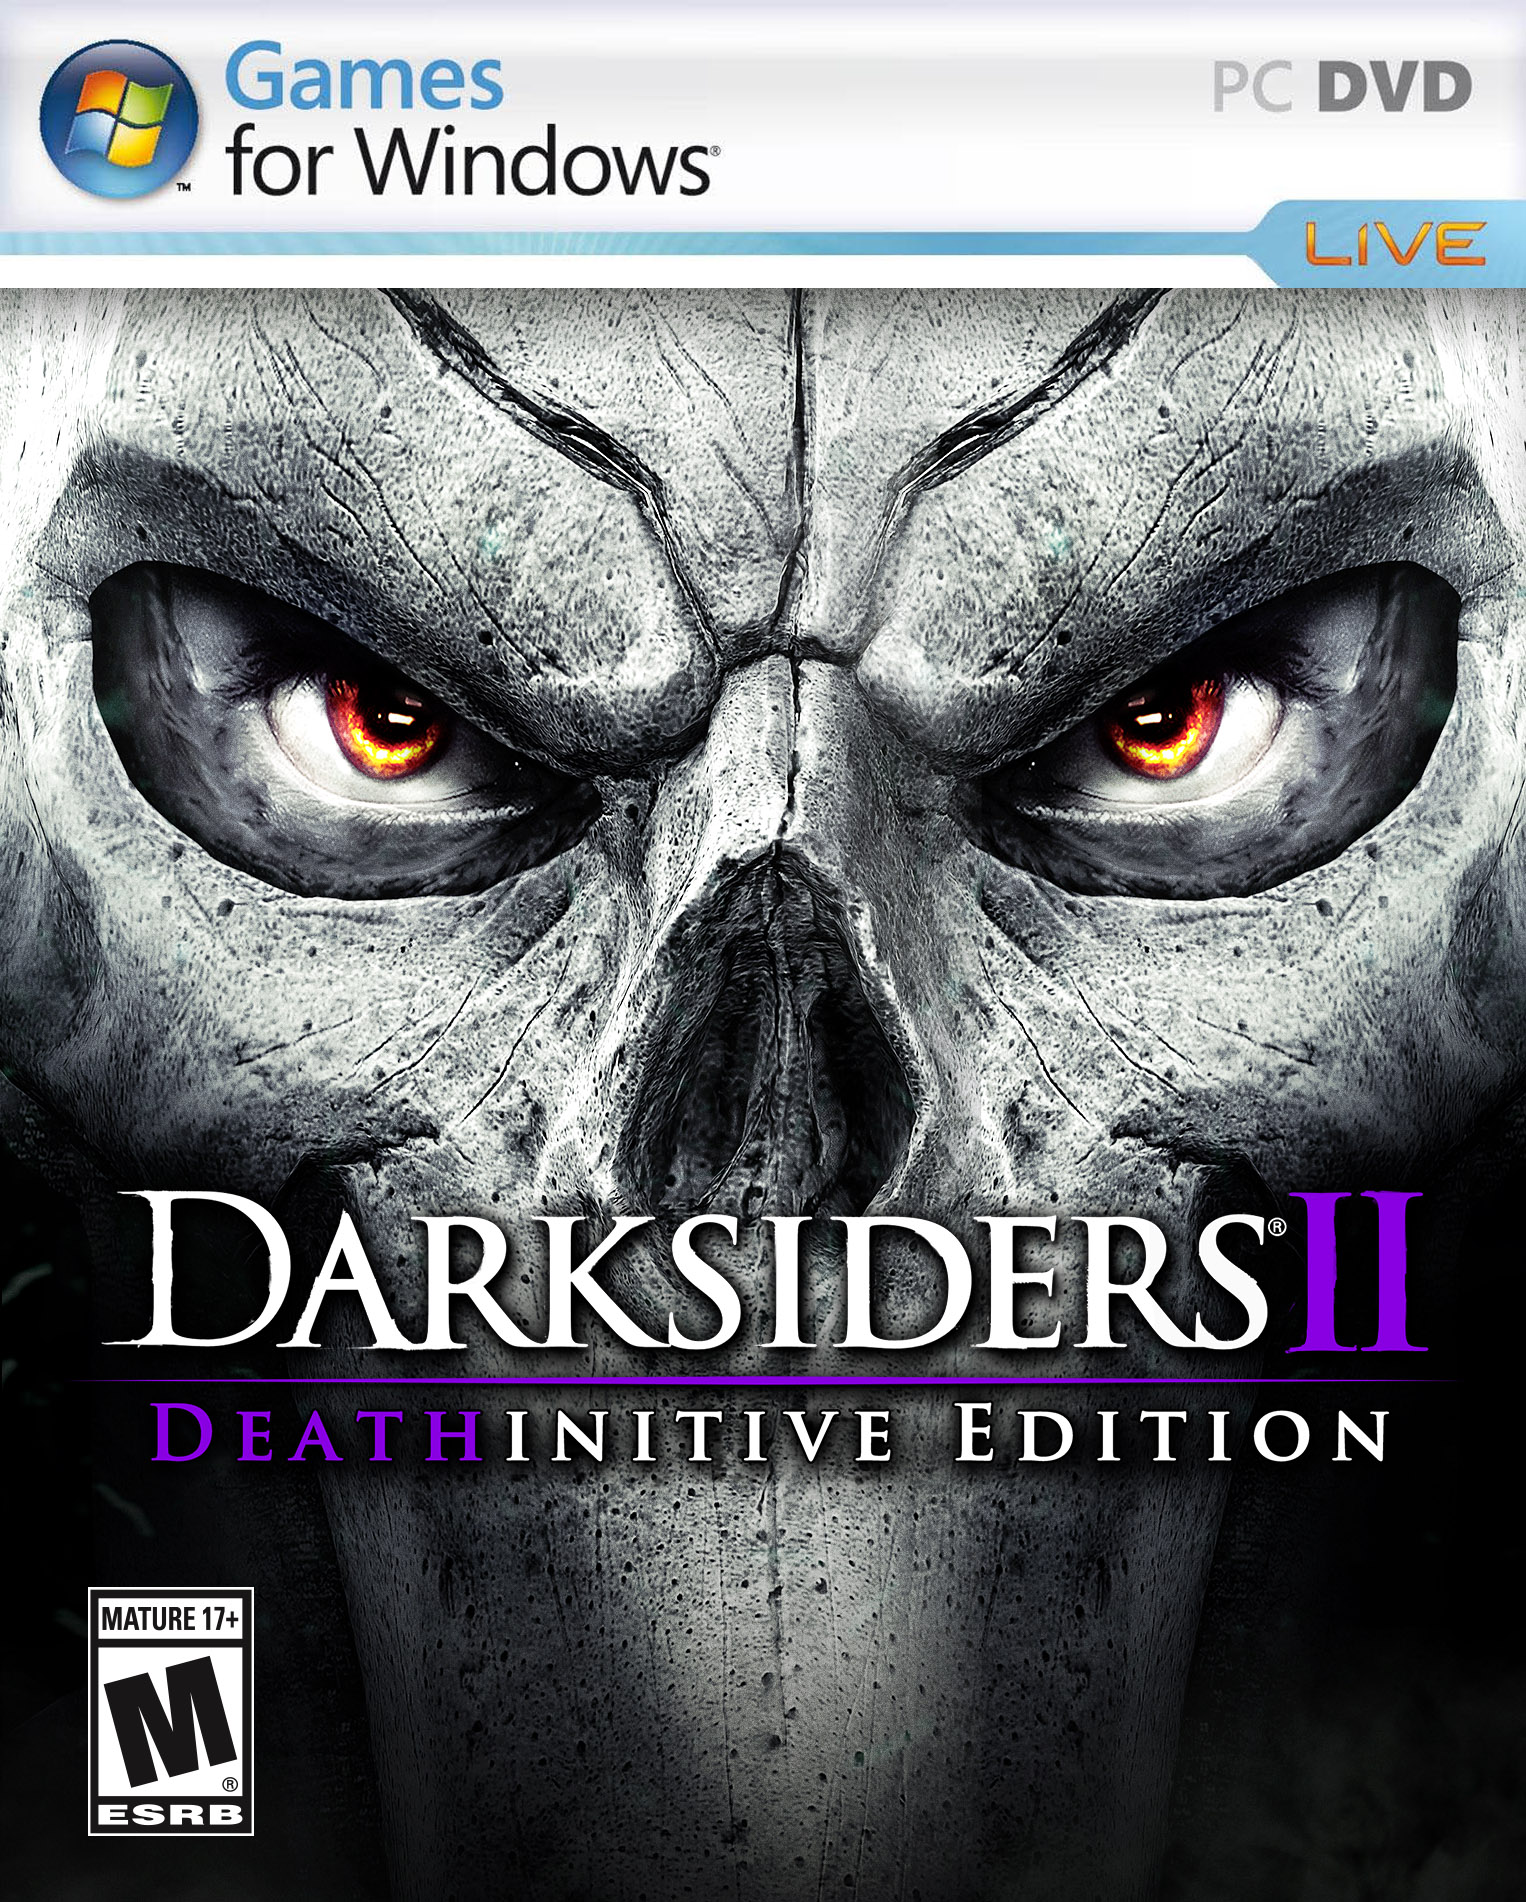 Darksiders II Deathinitive Edition (2015) RePack